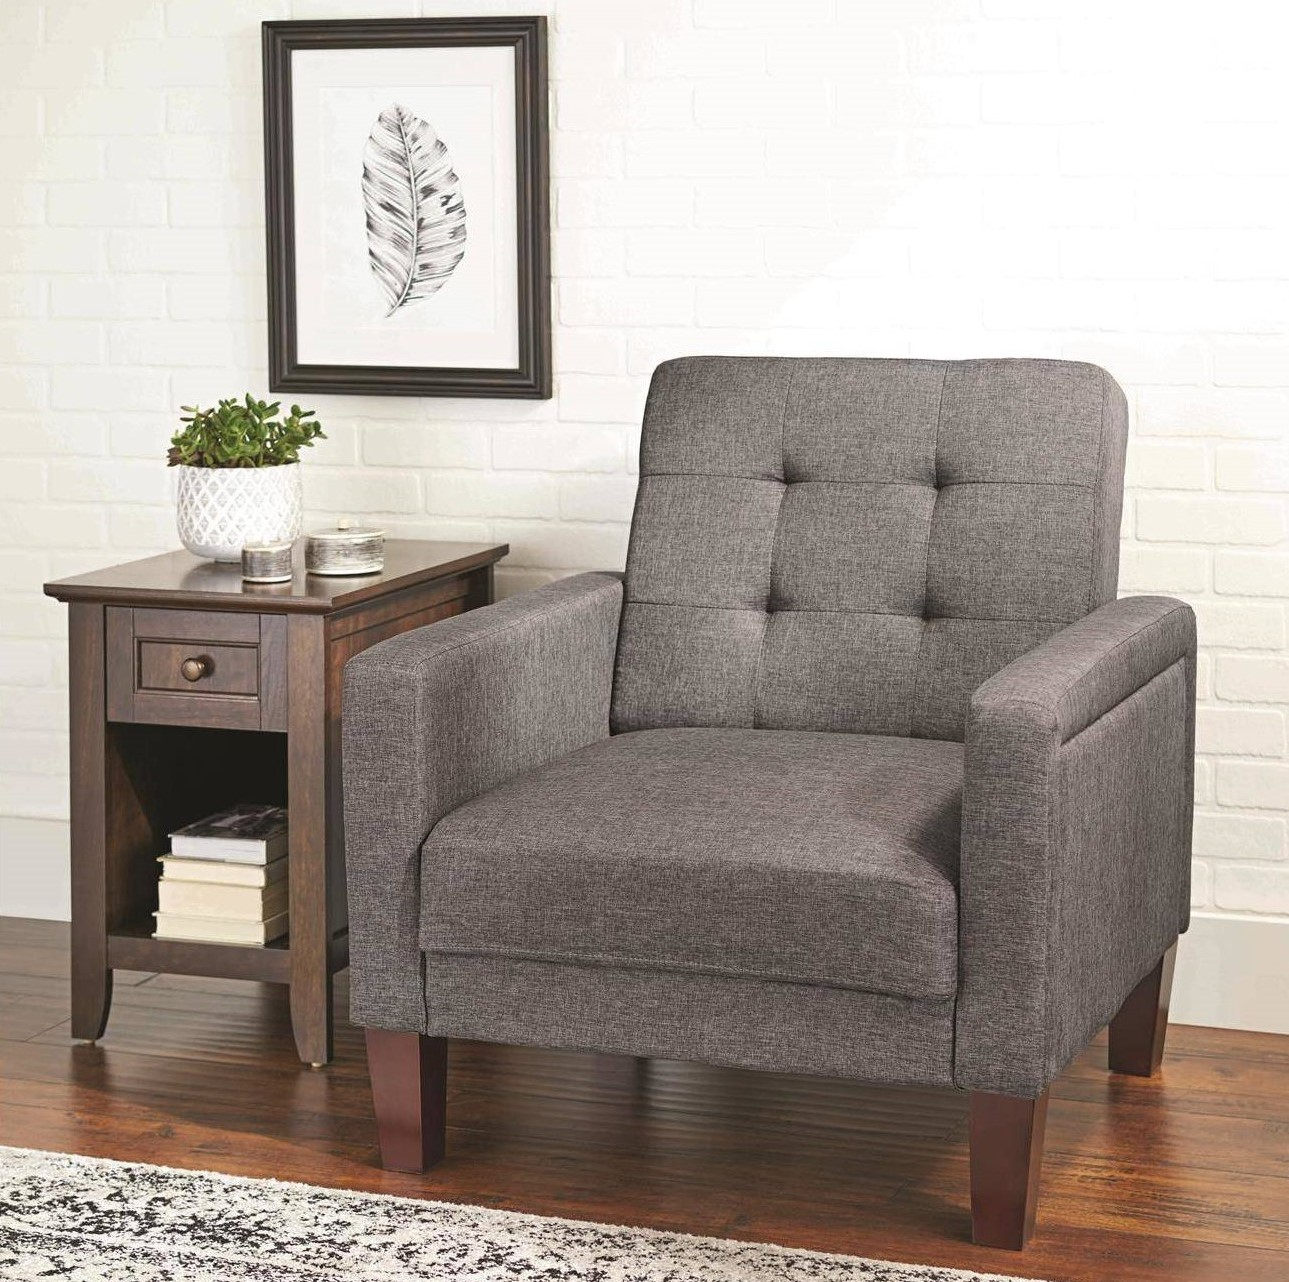 Better Homes & Gardens Porter Chair, Multiple Colors